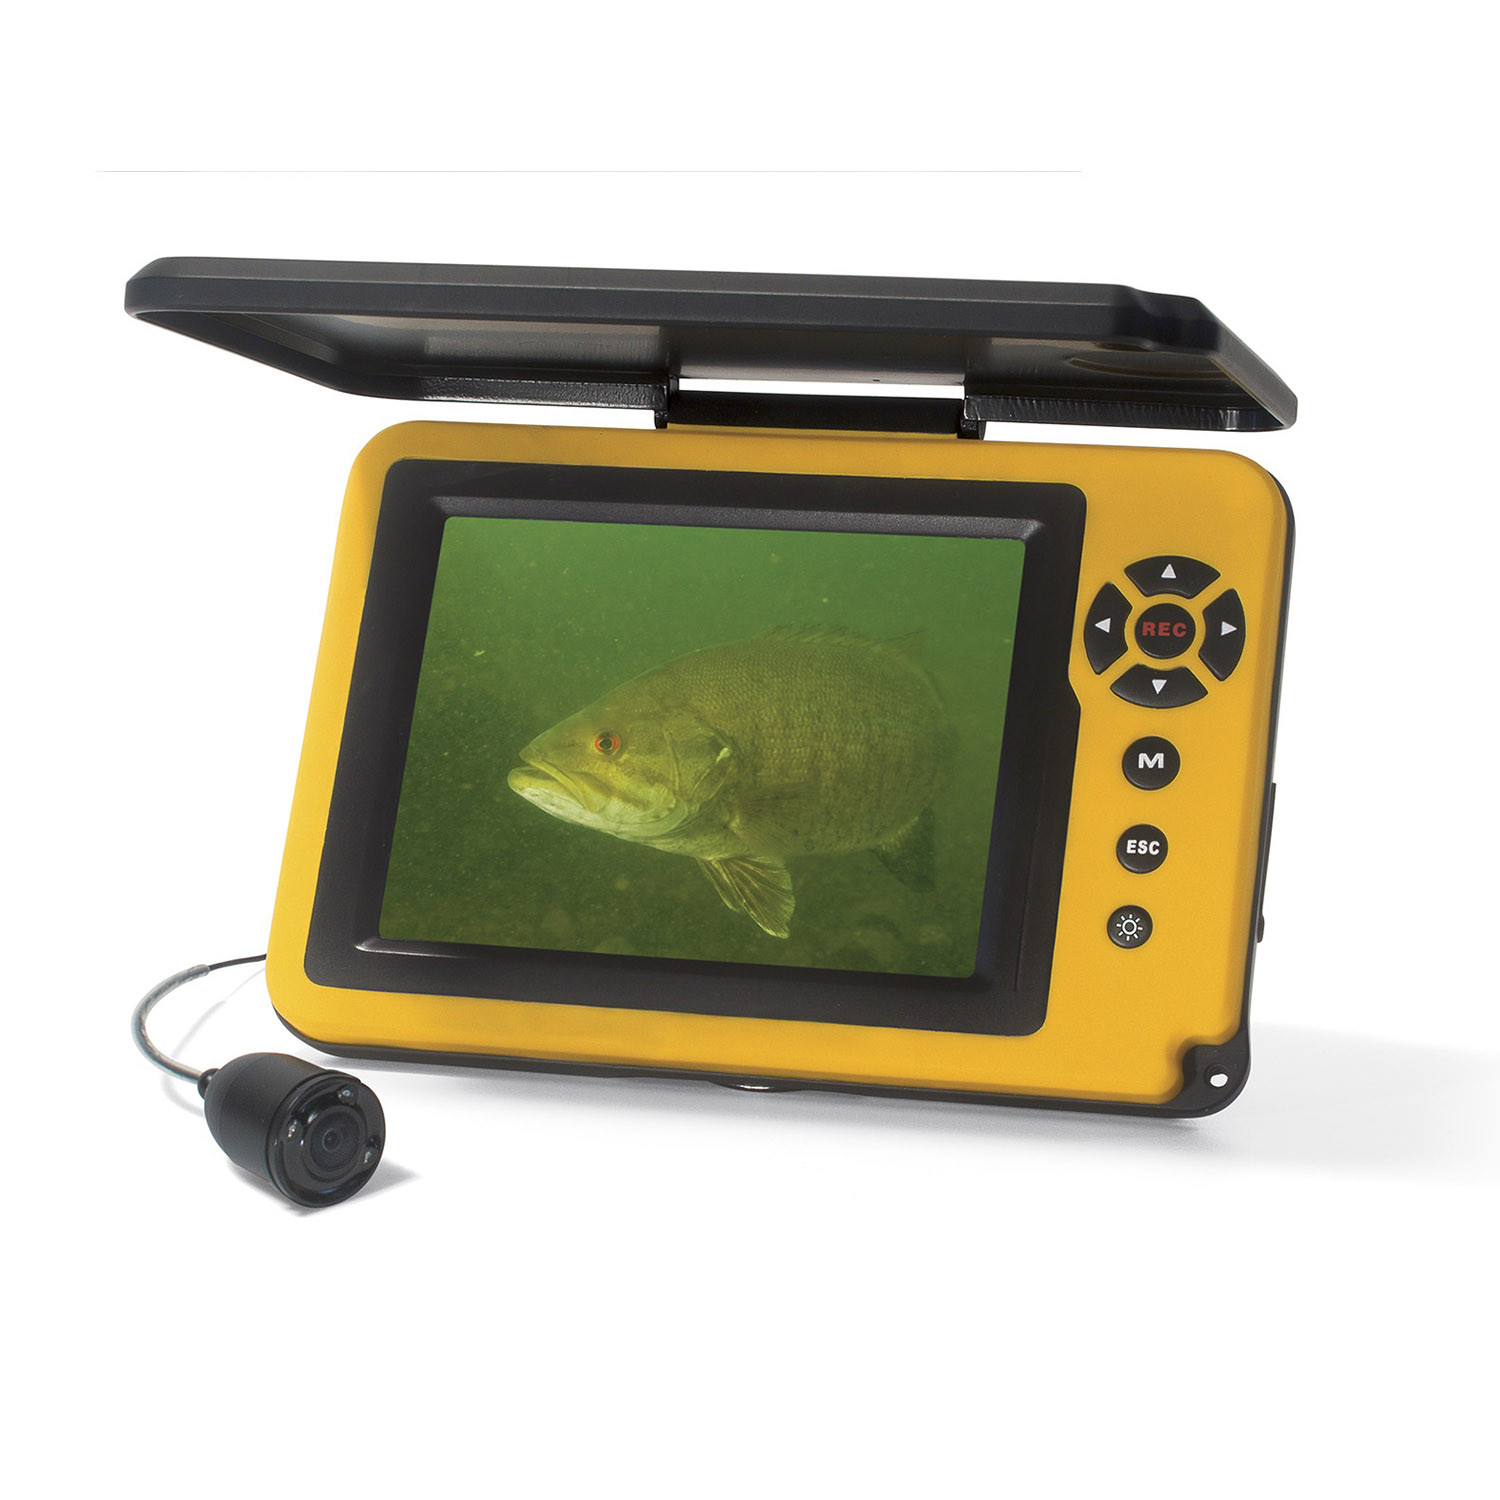 Aqua-Vu: Micro 5 plus DVR:  Underwater Viewing System    The 3.5-inch LCD screen displays colorful underwater scenery with sharp resolution and dazzling brightness. The 3X digital zoom lets you examine fish and cover up close, while the infrared lighting system illuminates deep and dark water. The Aqua-Vu: Micro 5 is powered by a tiny yet potent rechargeable lithium-ion battery that operates for up to seven hours. The waterproof case is rated IP67, and includes a sunshield screen protector.    Other features include a DVR with an 8GB internal SD card, a USB port for video out and a 100-foot cable.   MSRP: $599    www.aquavu.com